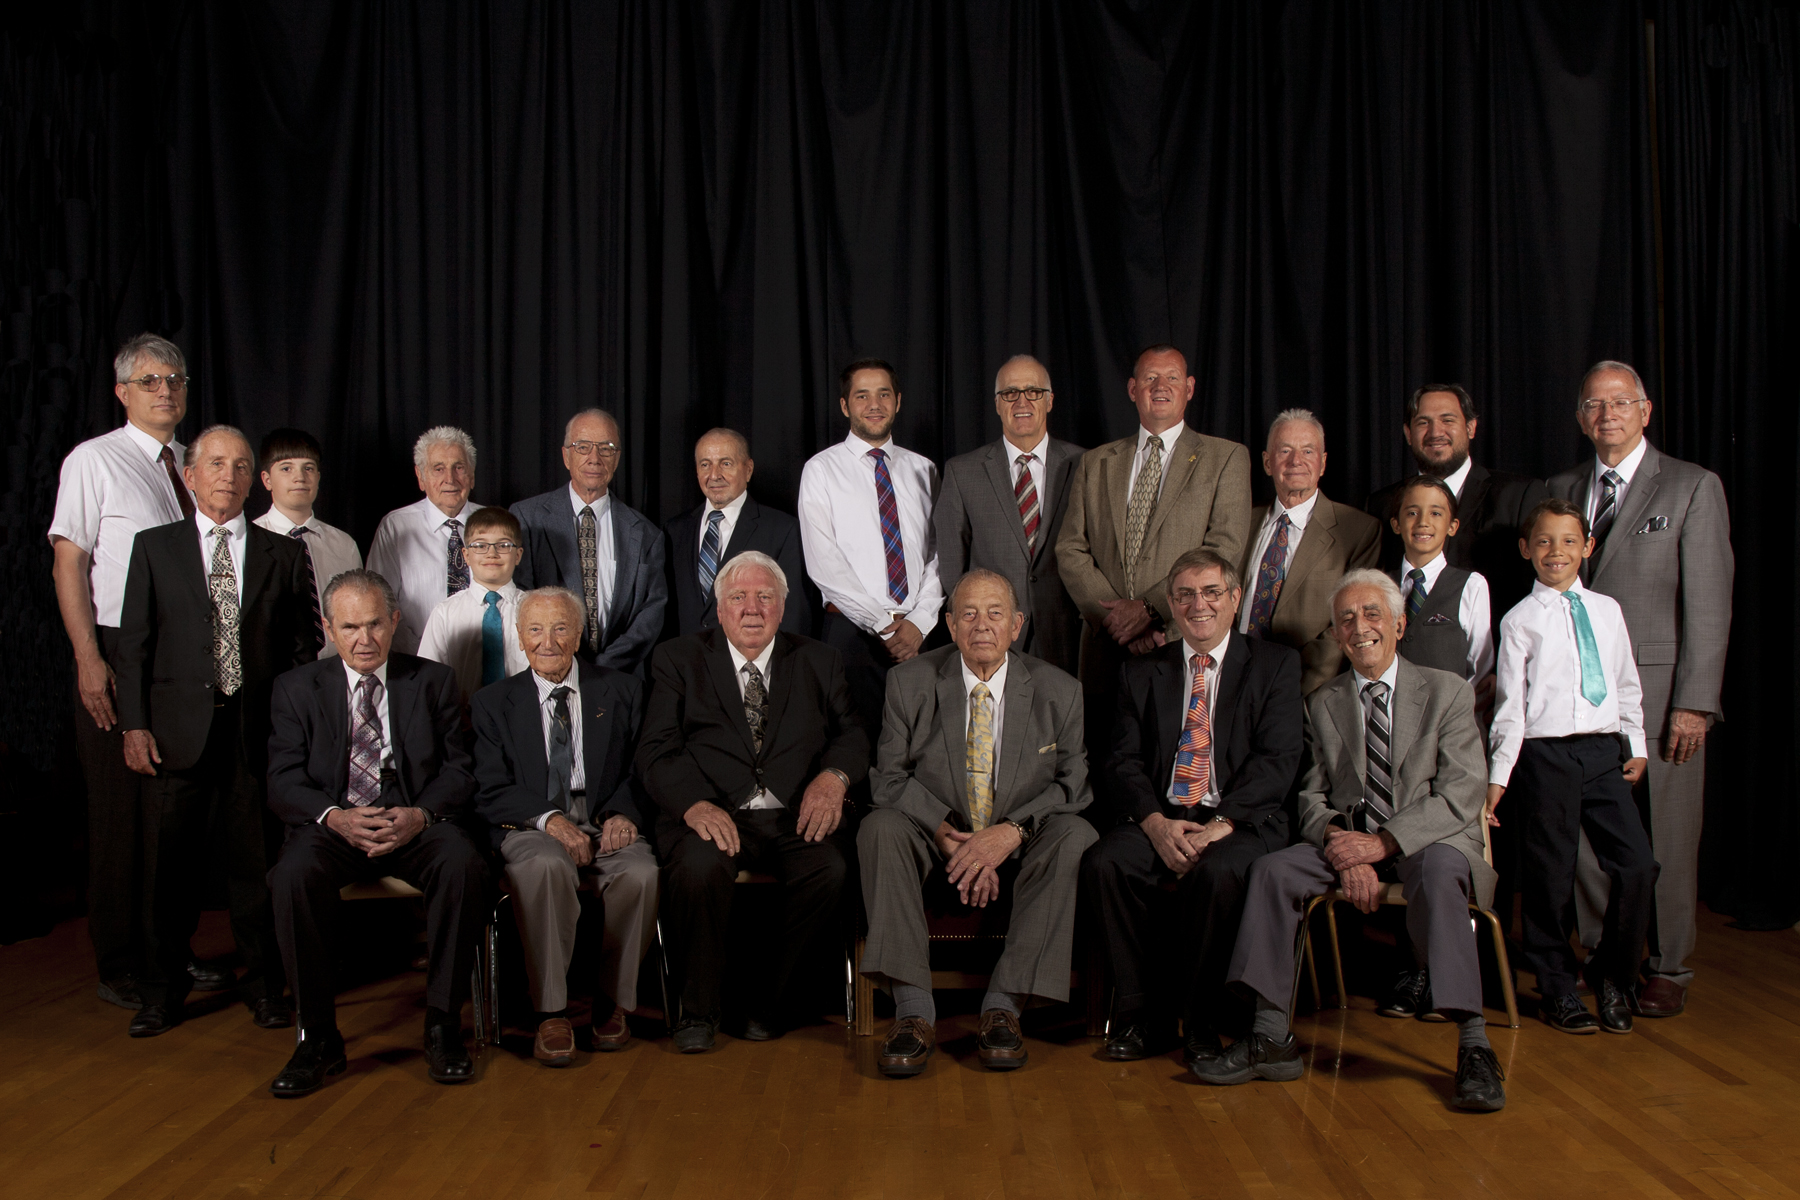 The German Speaking Ward Elders Quorum pose for a photograph taken by former ward member Frank A. Langheinrich, who took a number of organizational photos for distribution on the ward's final day.